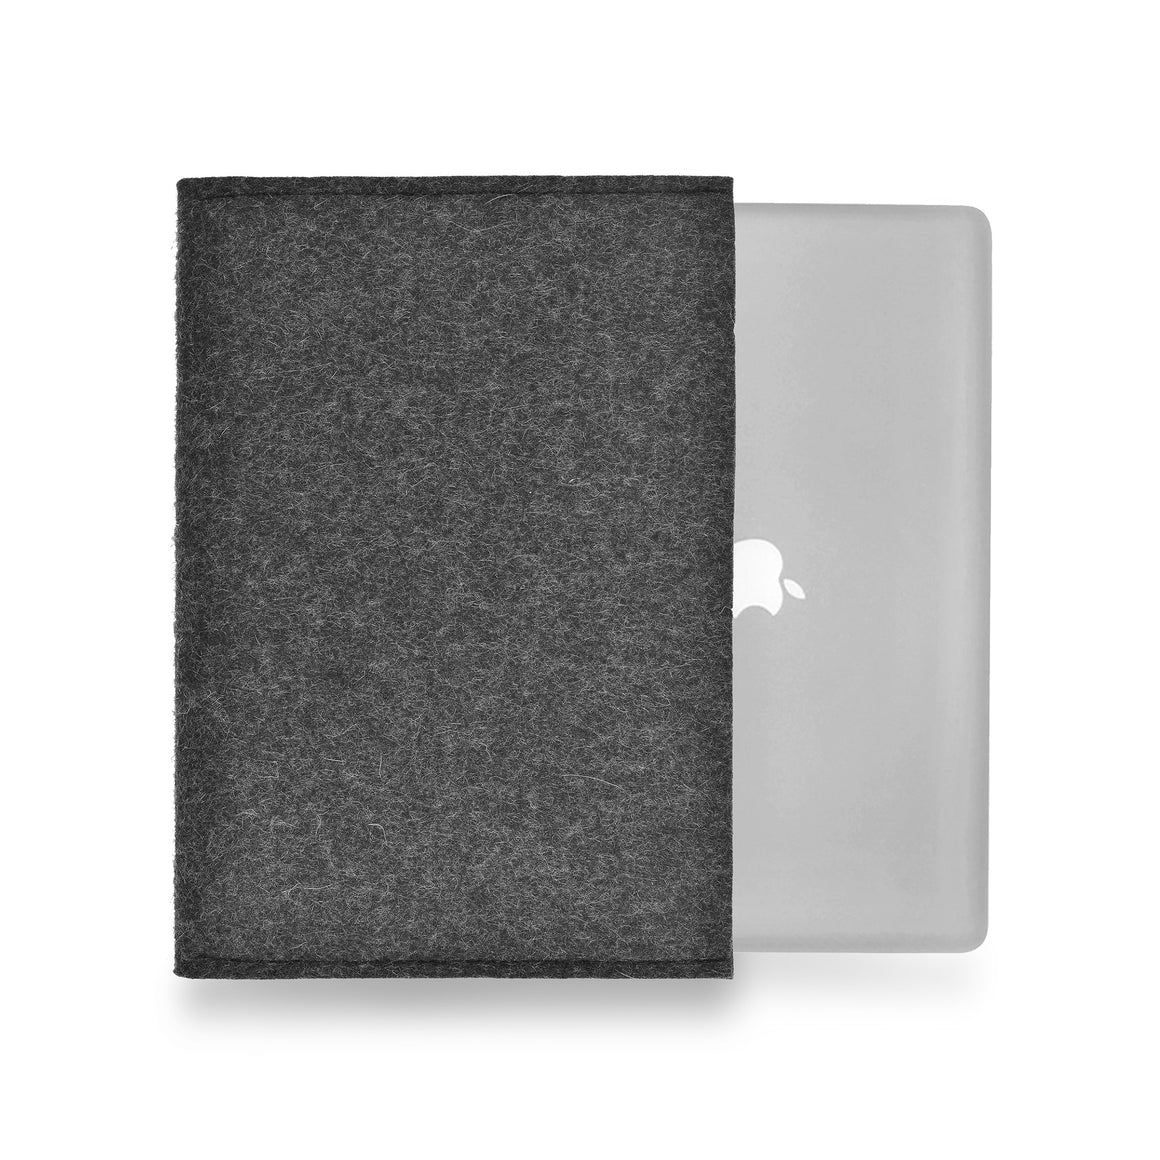 MacBook Pro 13 inch Wool Felt Charcoal Landscape - Wrappers UK